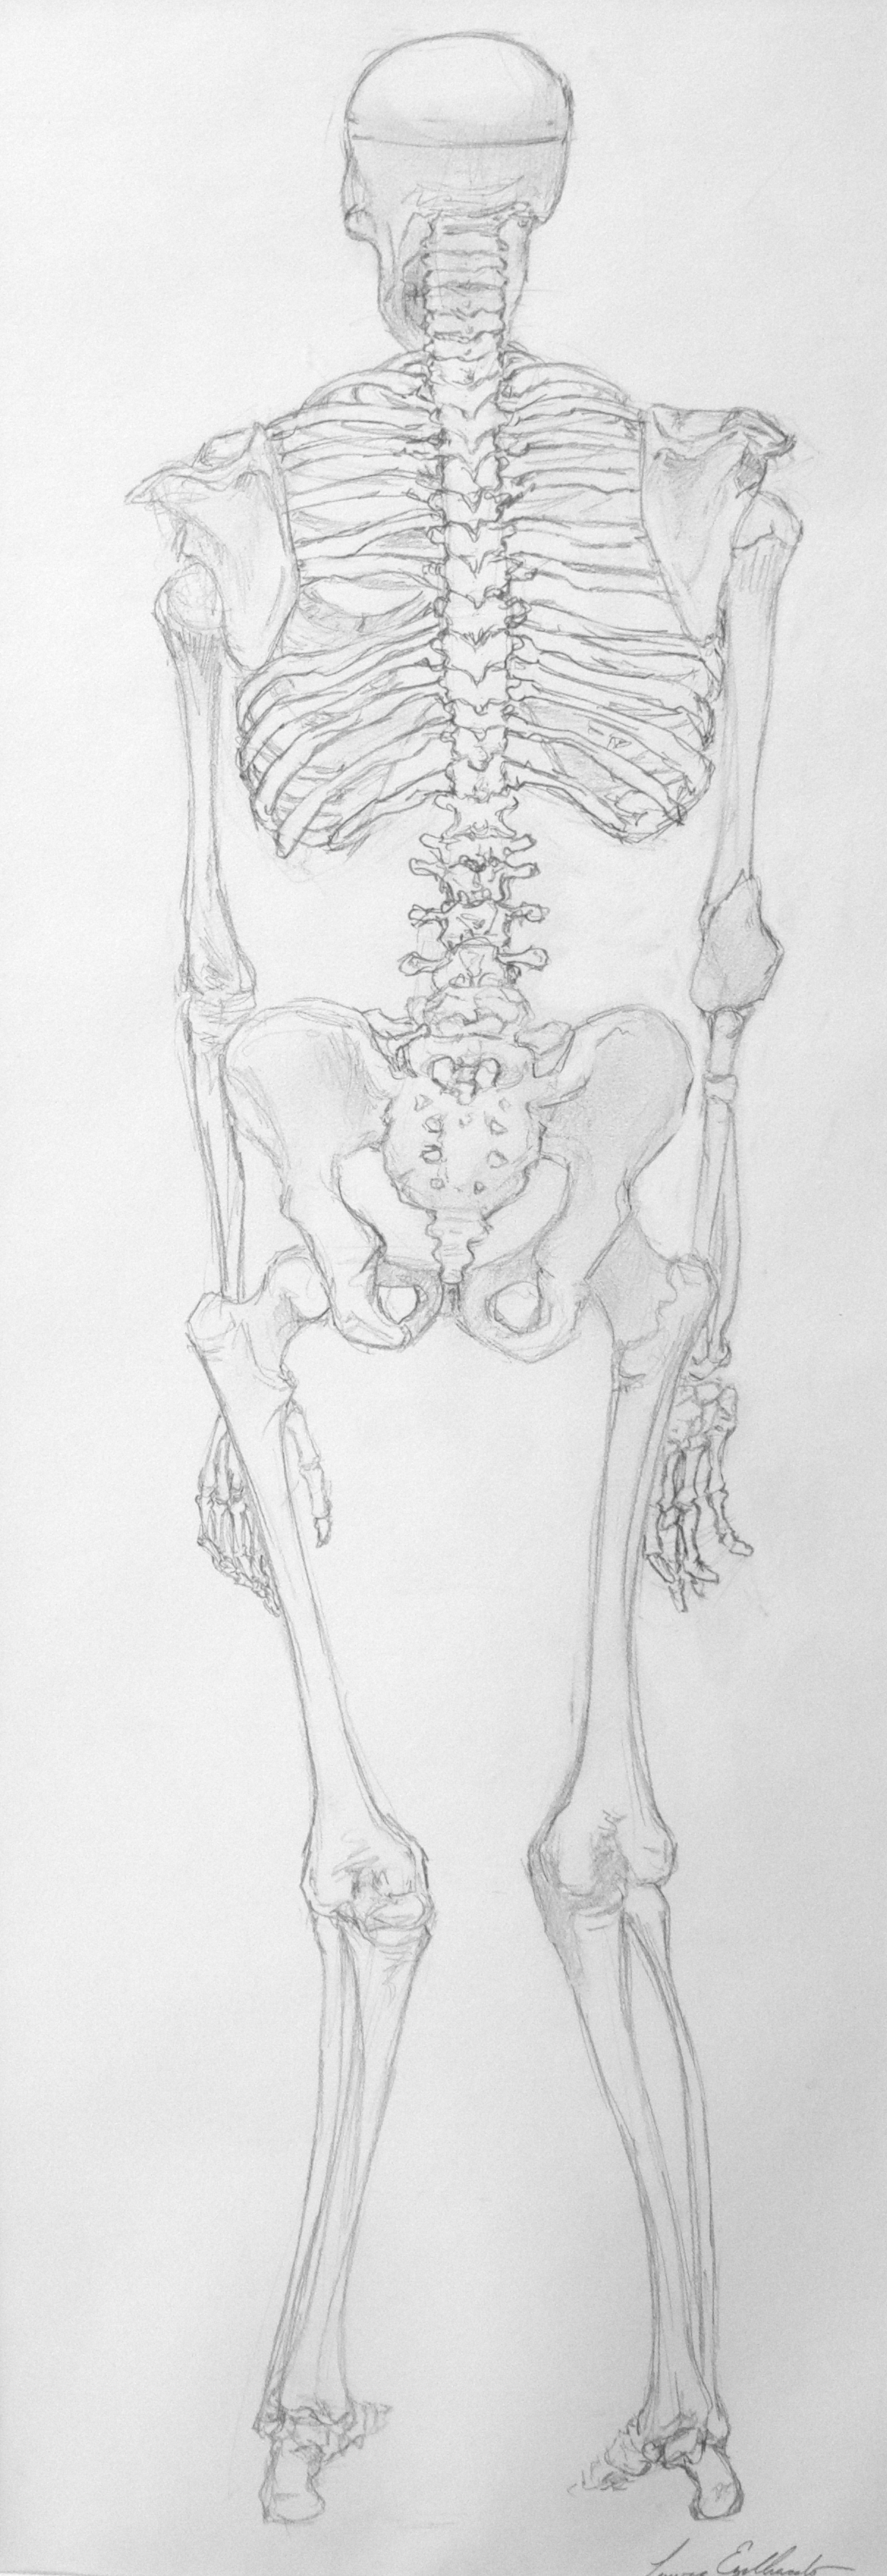 Skeleton Back Study